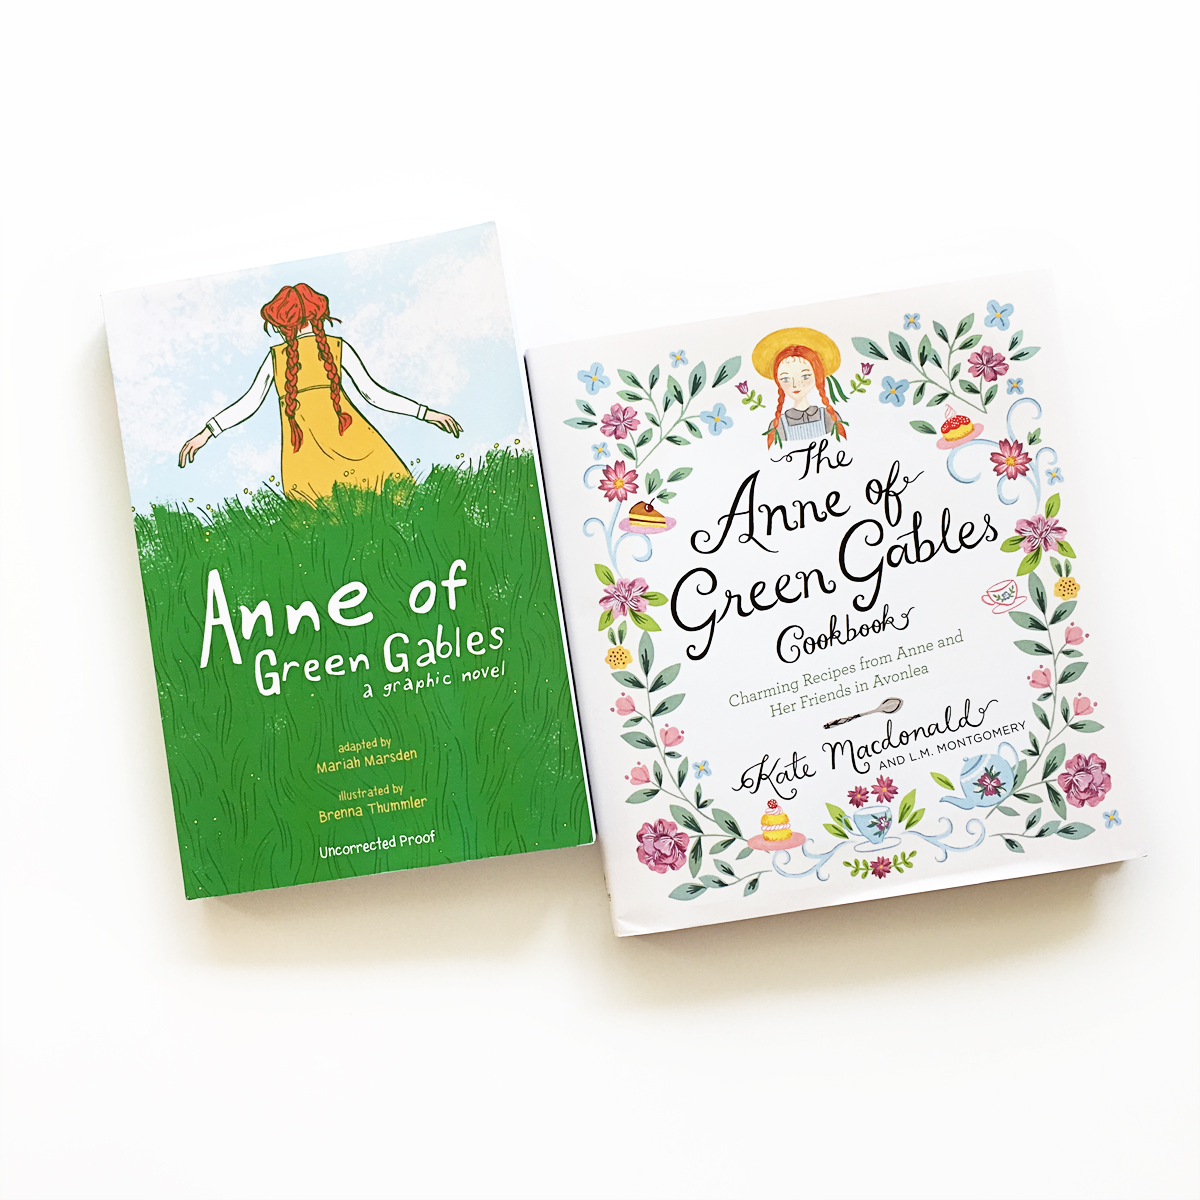 Anne of Green Gables: A Graphic Novel and The Anne of Green Gables Cookbook | Avery and Augustine